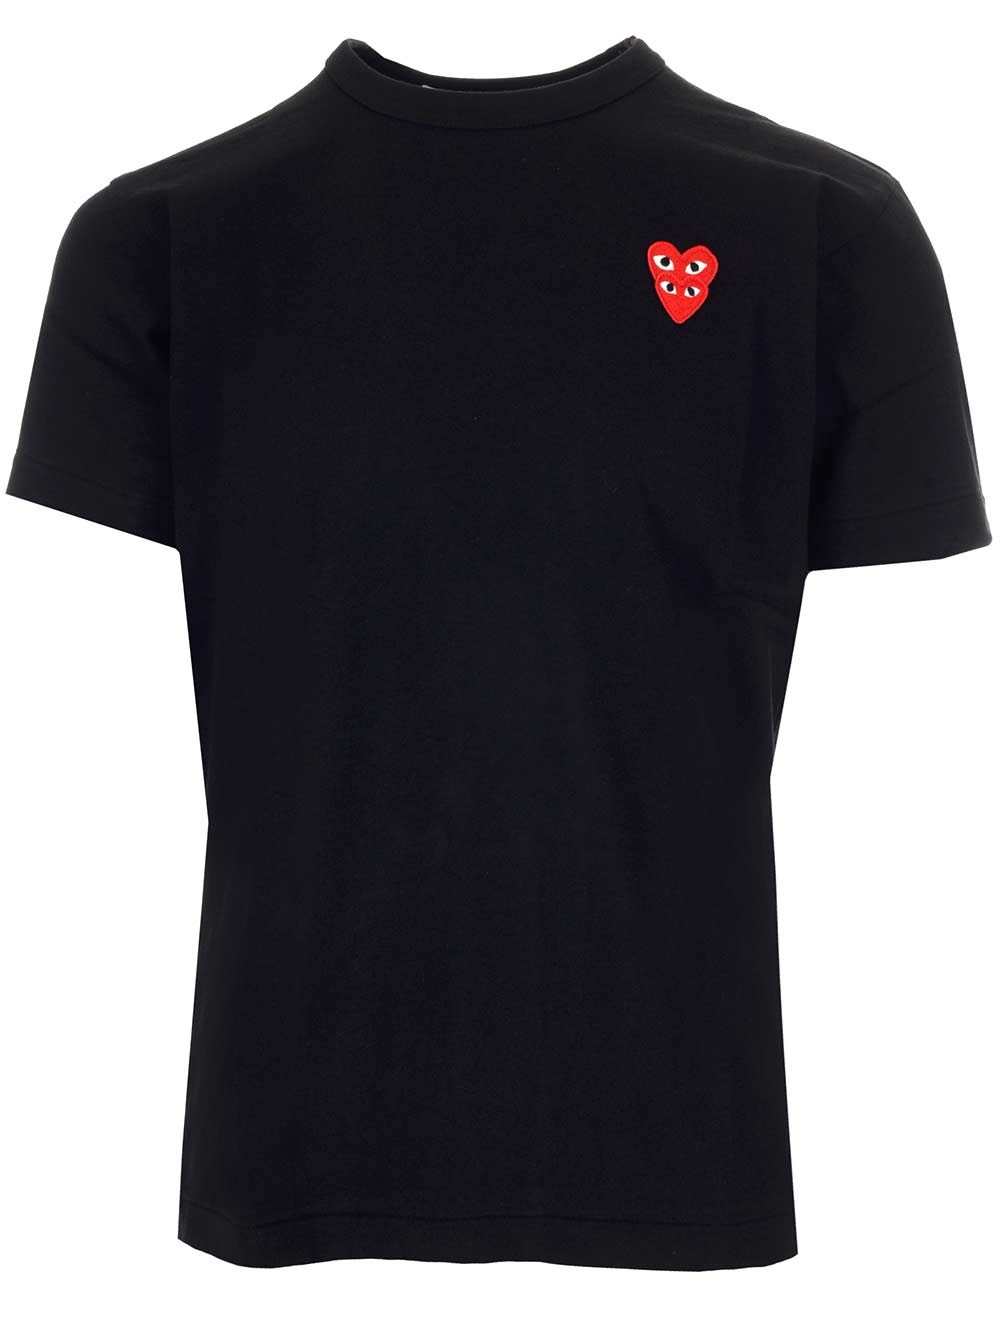 COMME DES GARCONS PLAY Embroidered Double Hearts T-Shirt